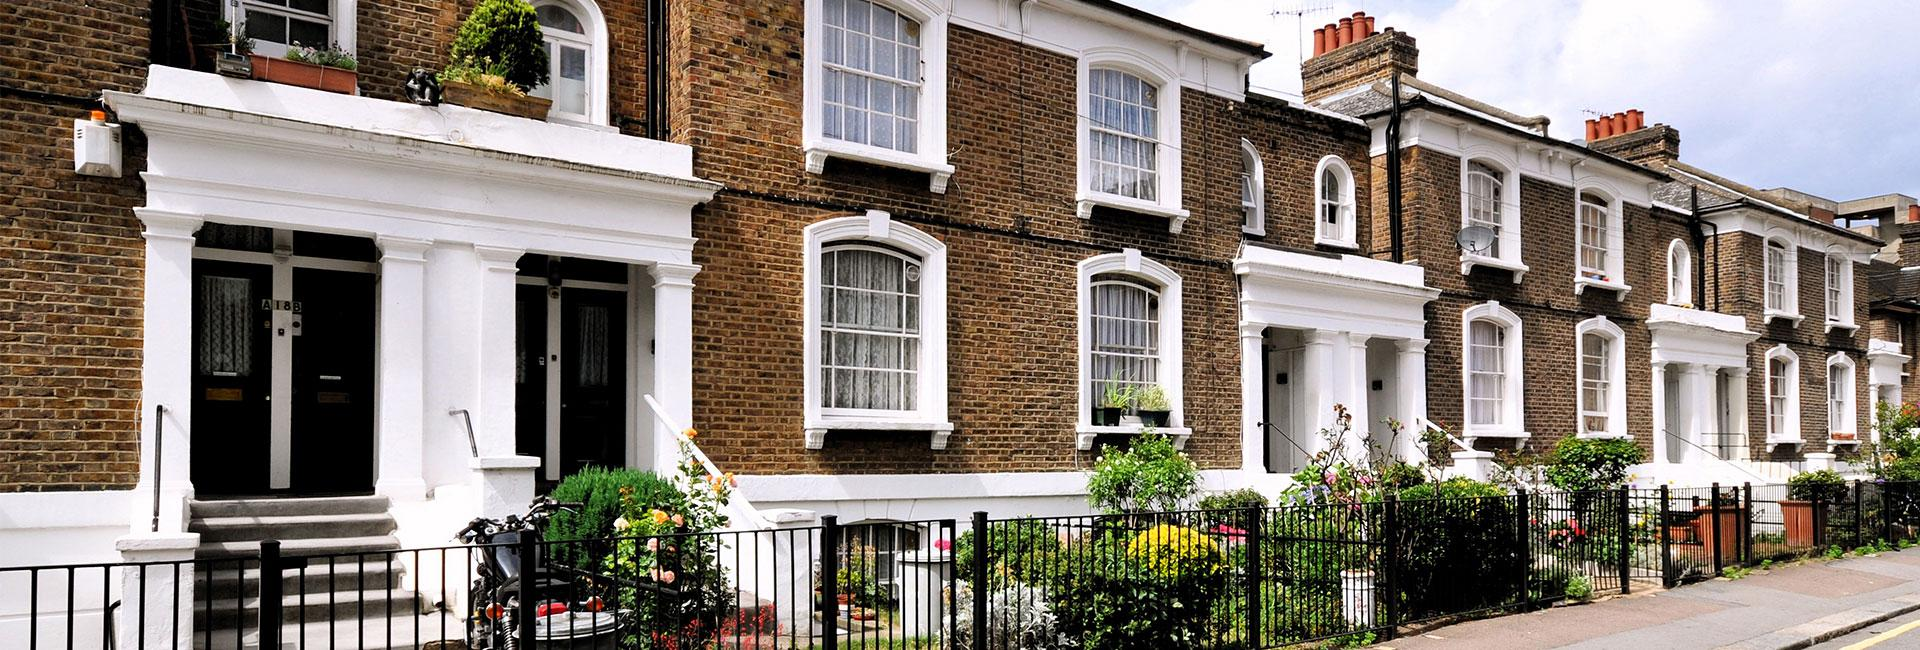 Row on London town houses. Property Activity Index